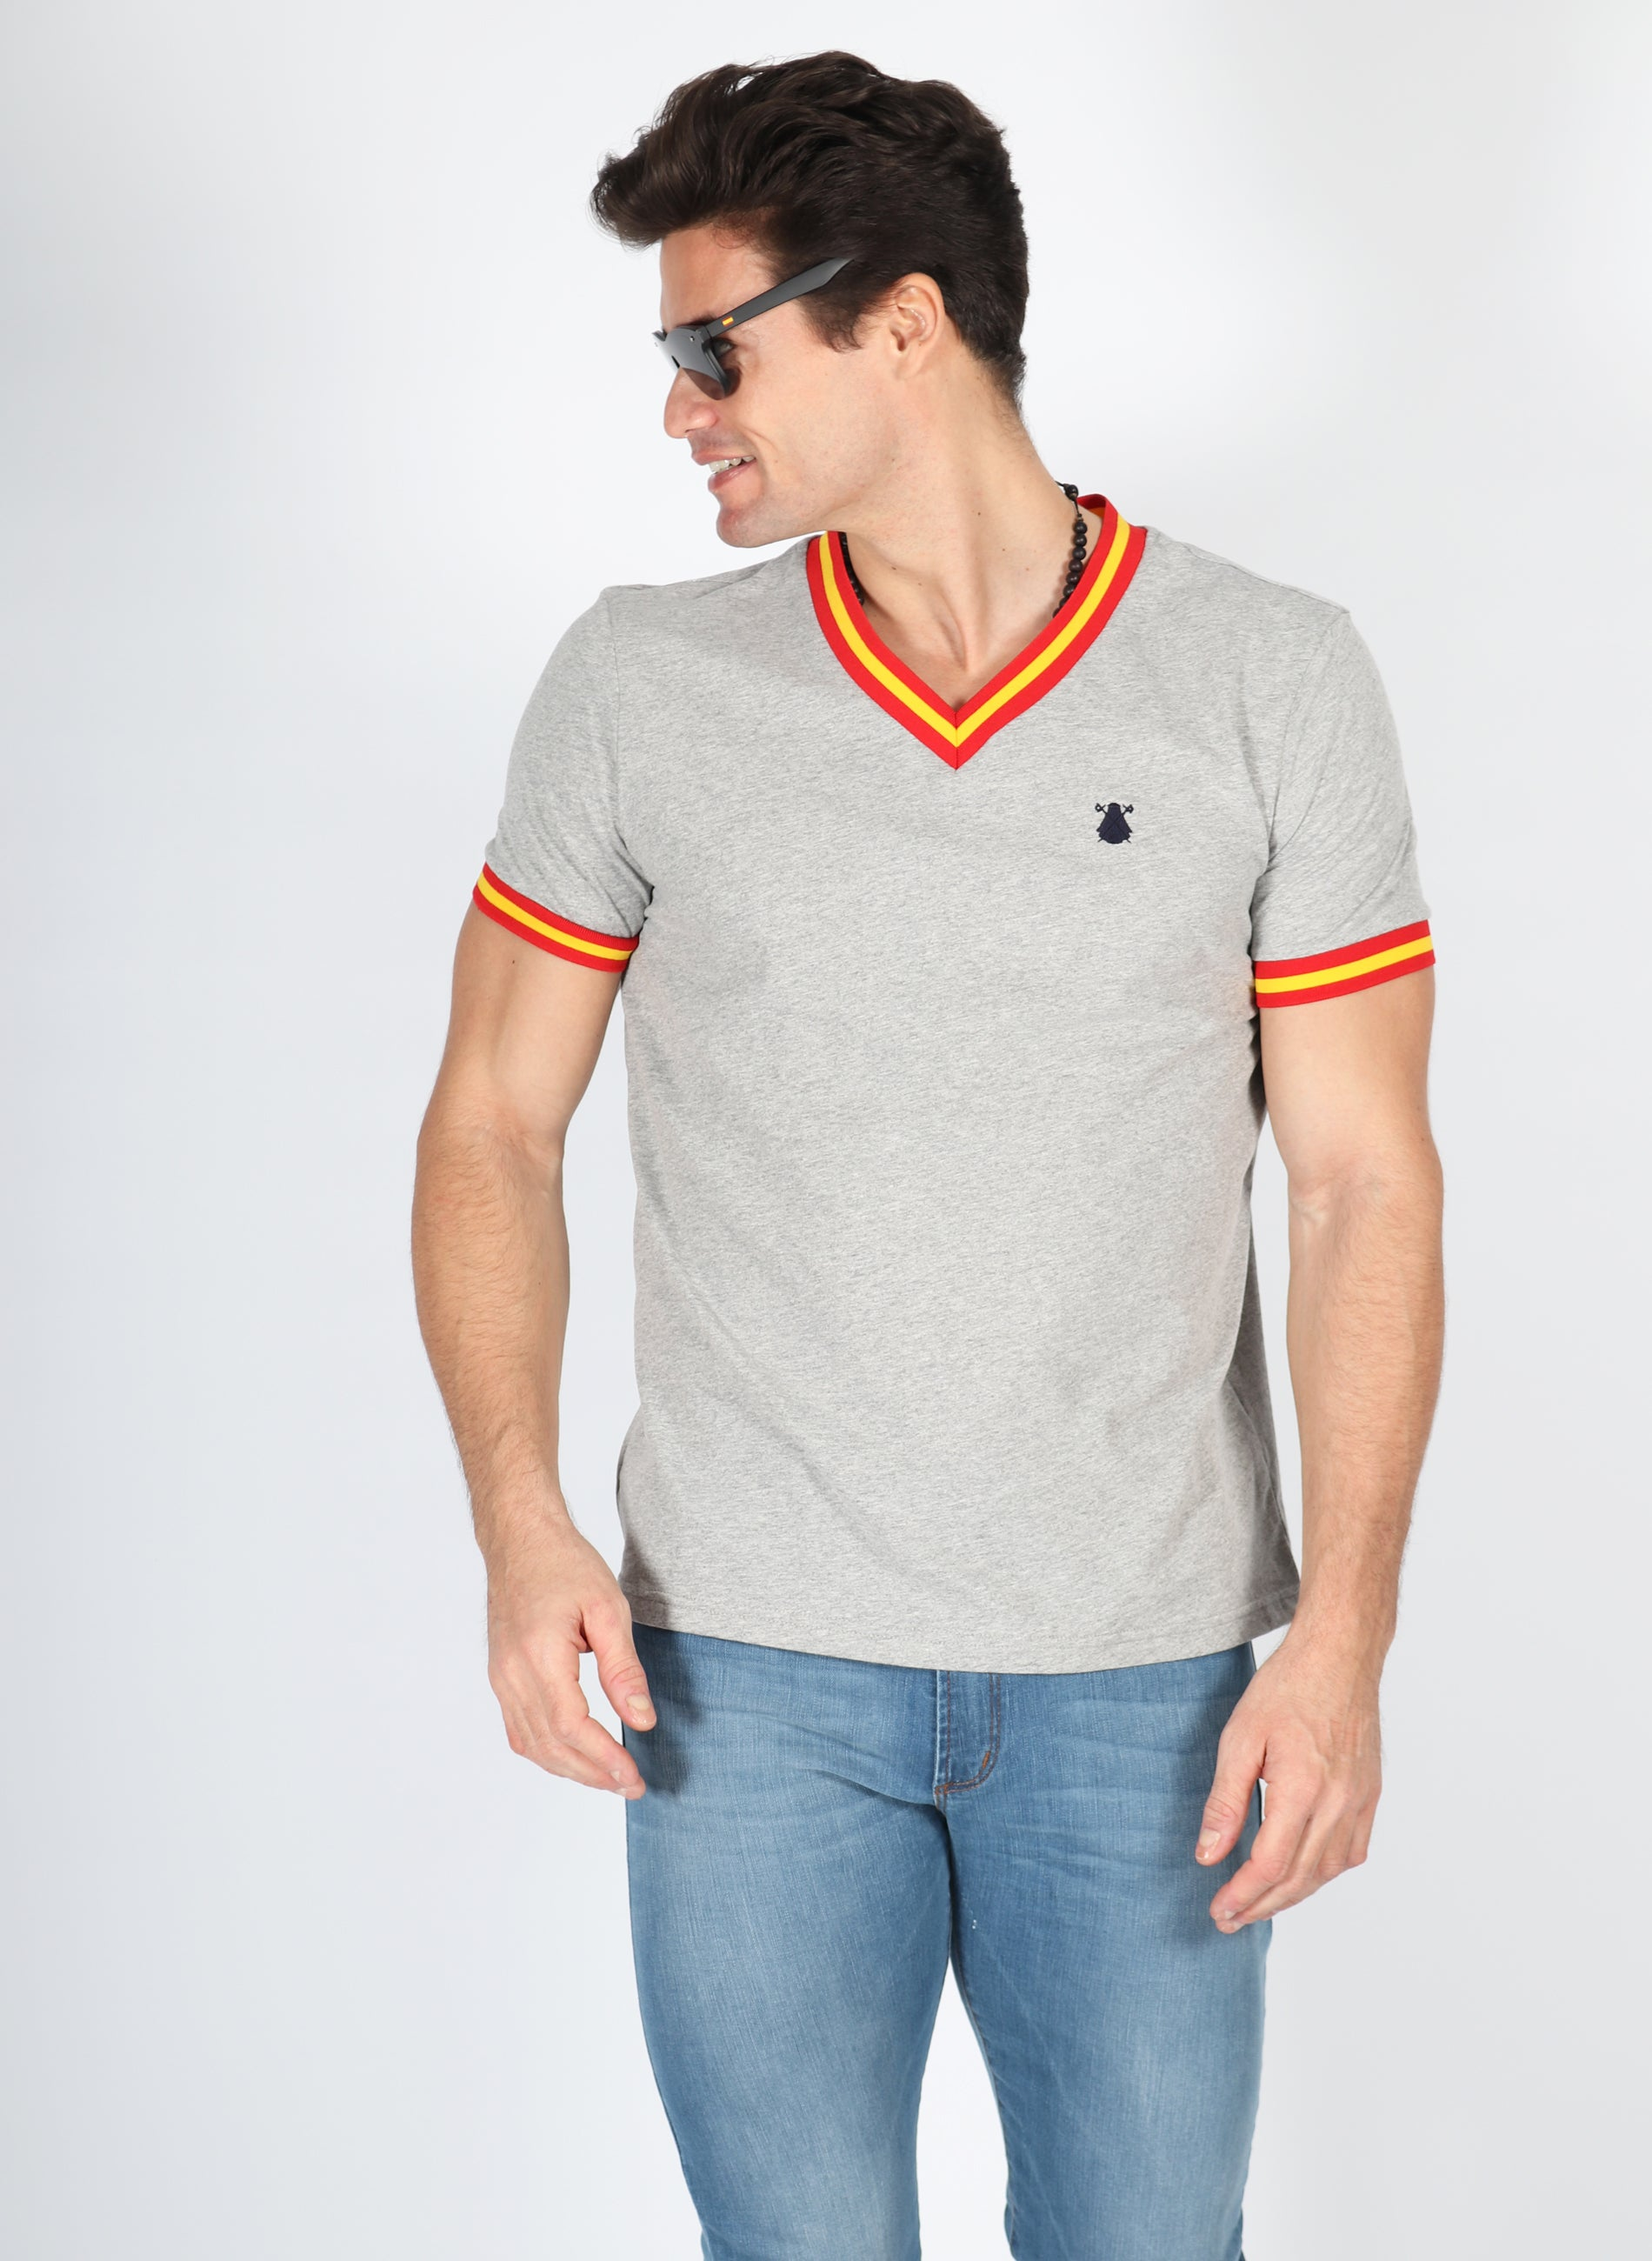 Spain Men's Gray Ribbon Peak T-shirt